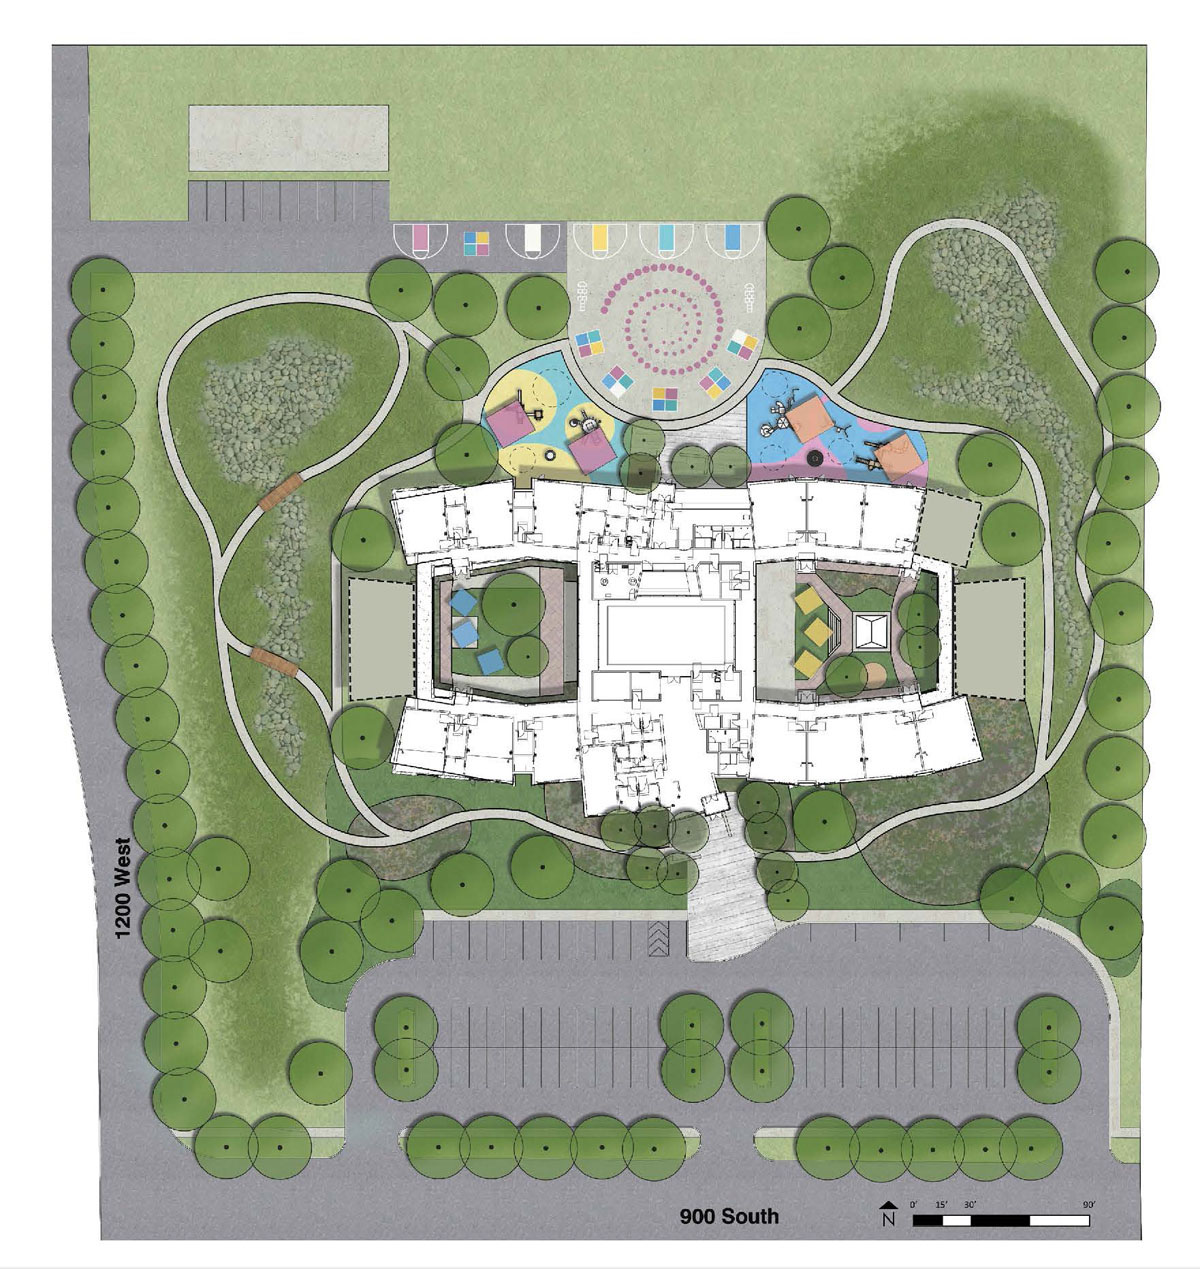 Site plan showing the landscape, playgrounds, building, and parking lot of the deaf and blind school.